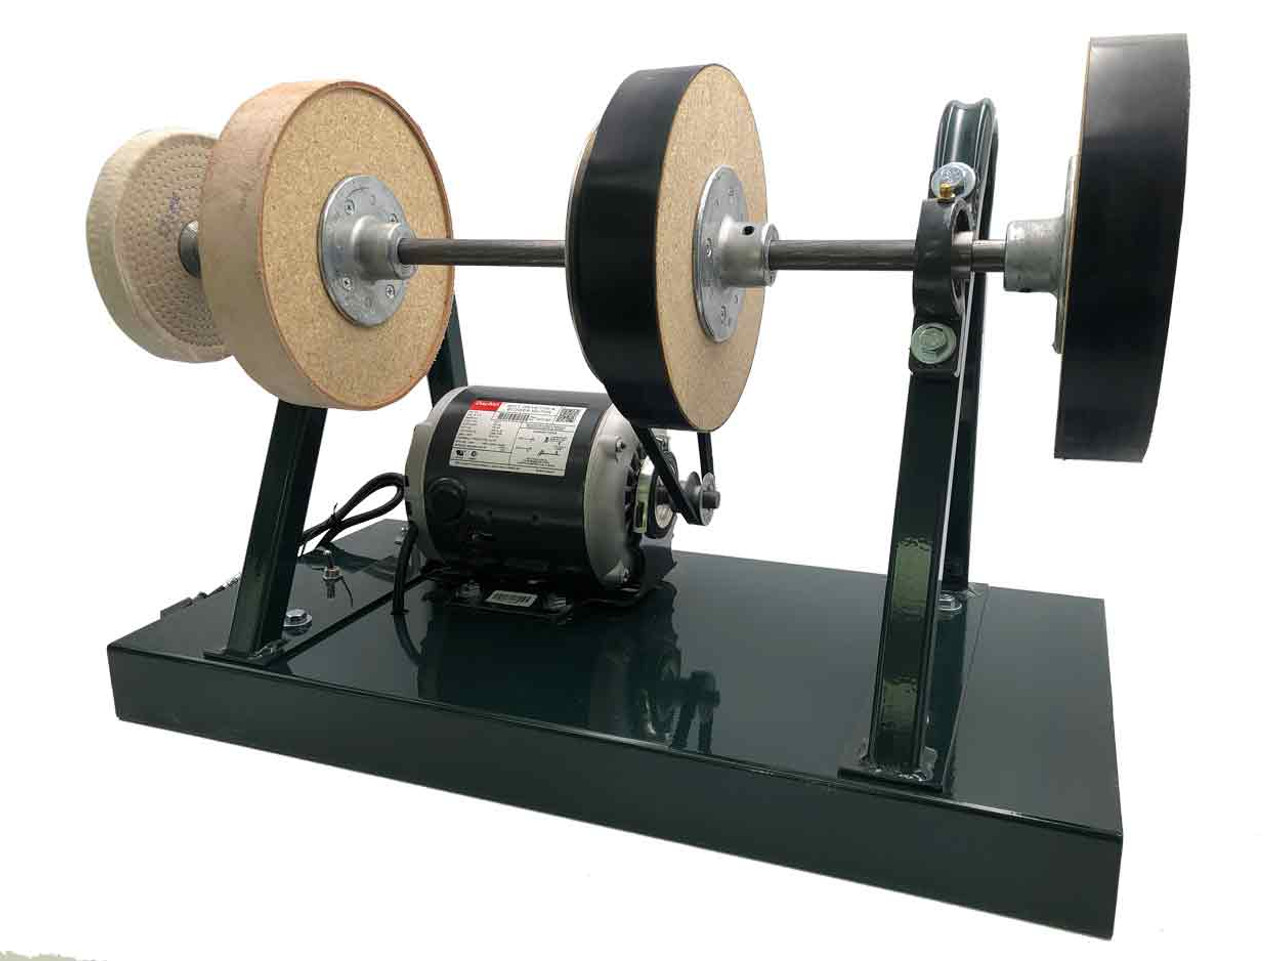 Burke Sharpener with a front and slightly left side view.